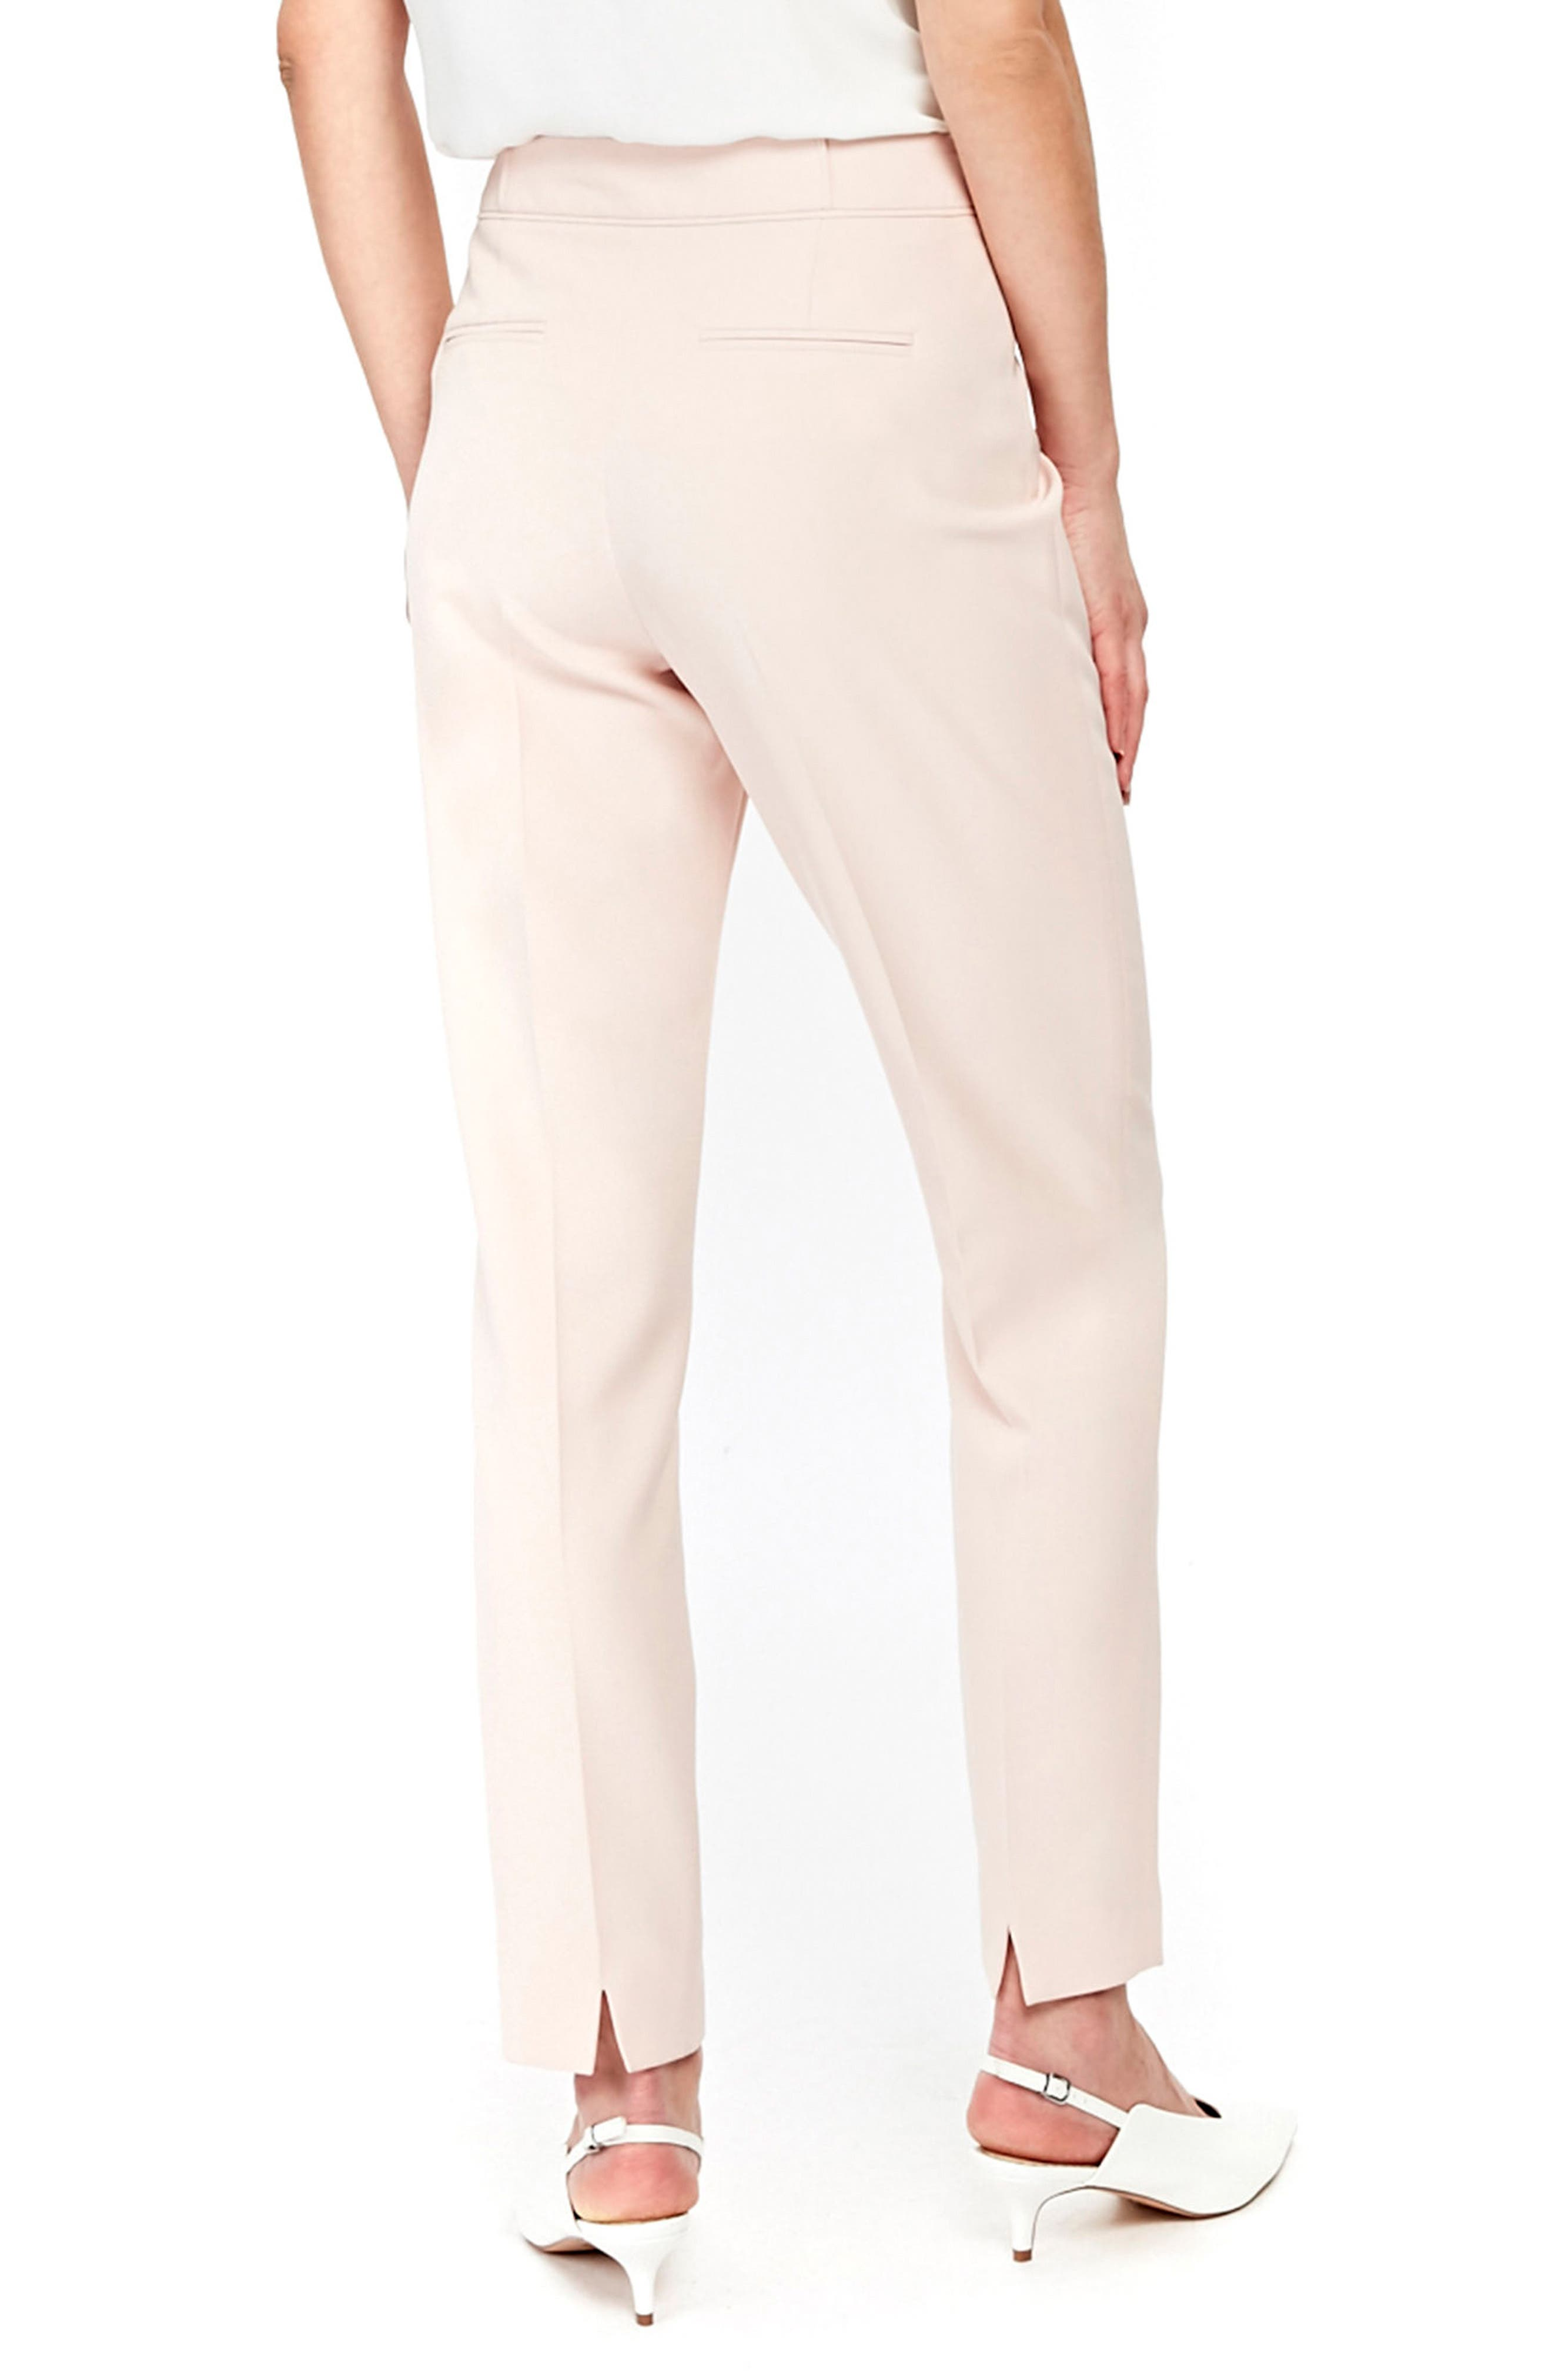 Sienna Trousers,                             Alternate thumbnail 2, color,                             650